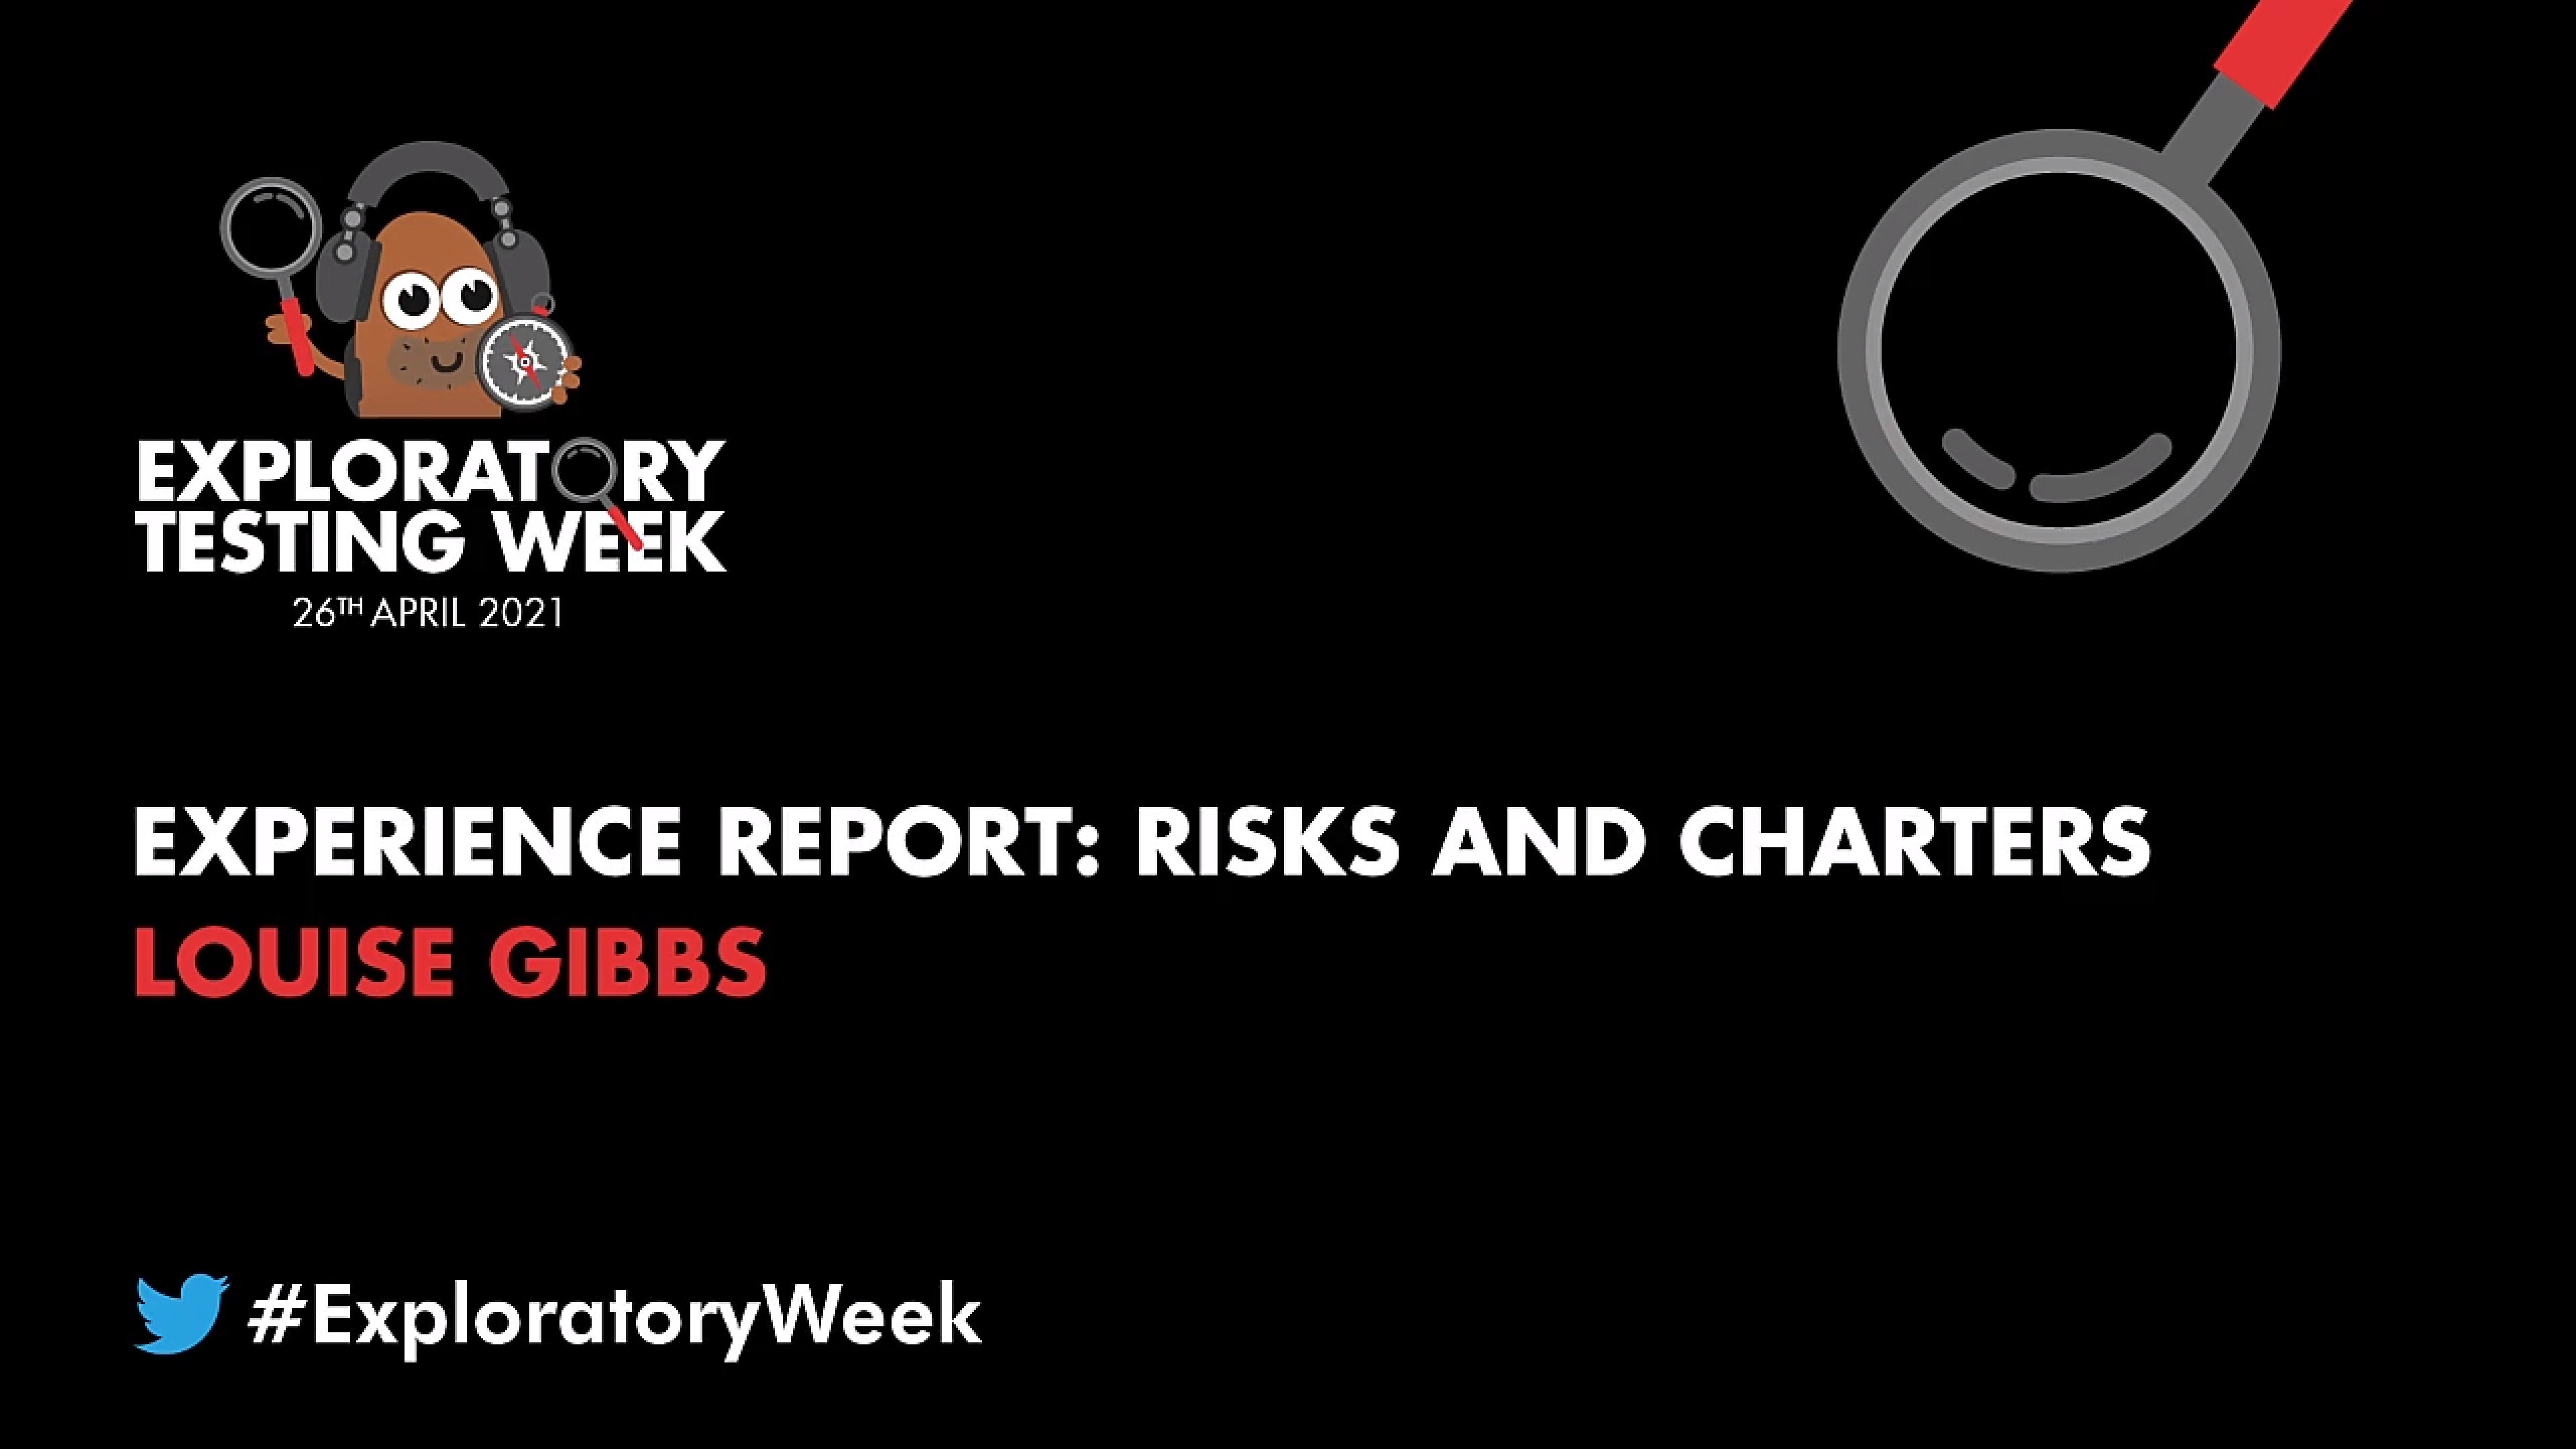 Experience Report: Risks and Charters with Louise Gibbs